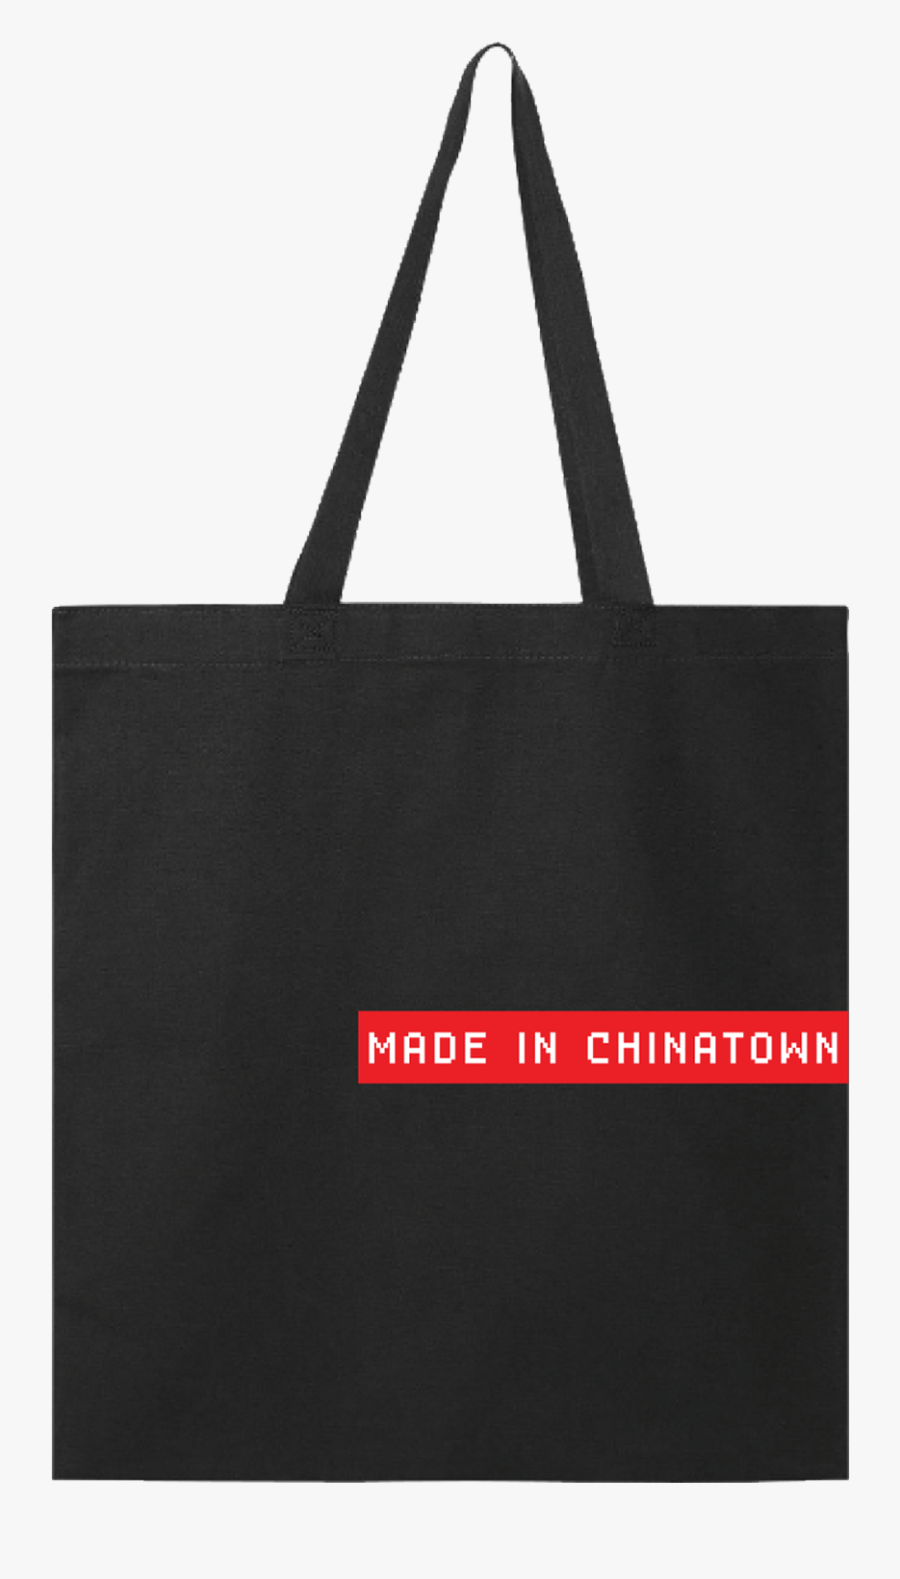 Jb Screen Printing & Embroidery Offers A Wide Variety - Tote Bag, Transparent Clipart